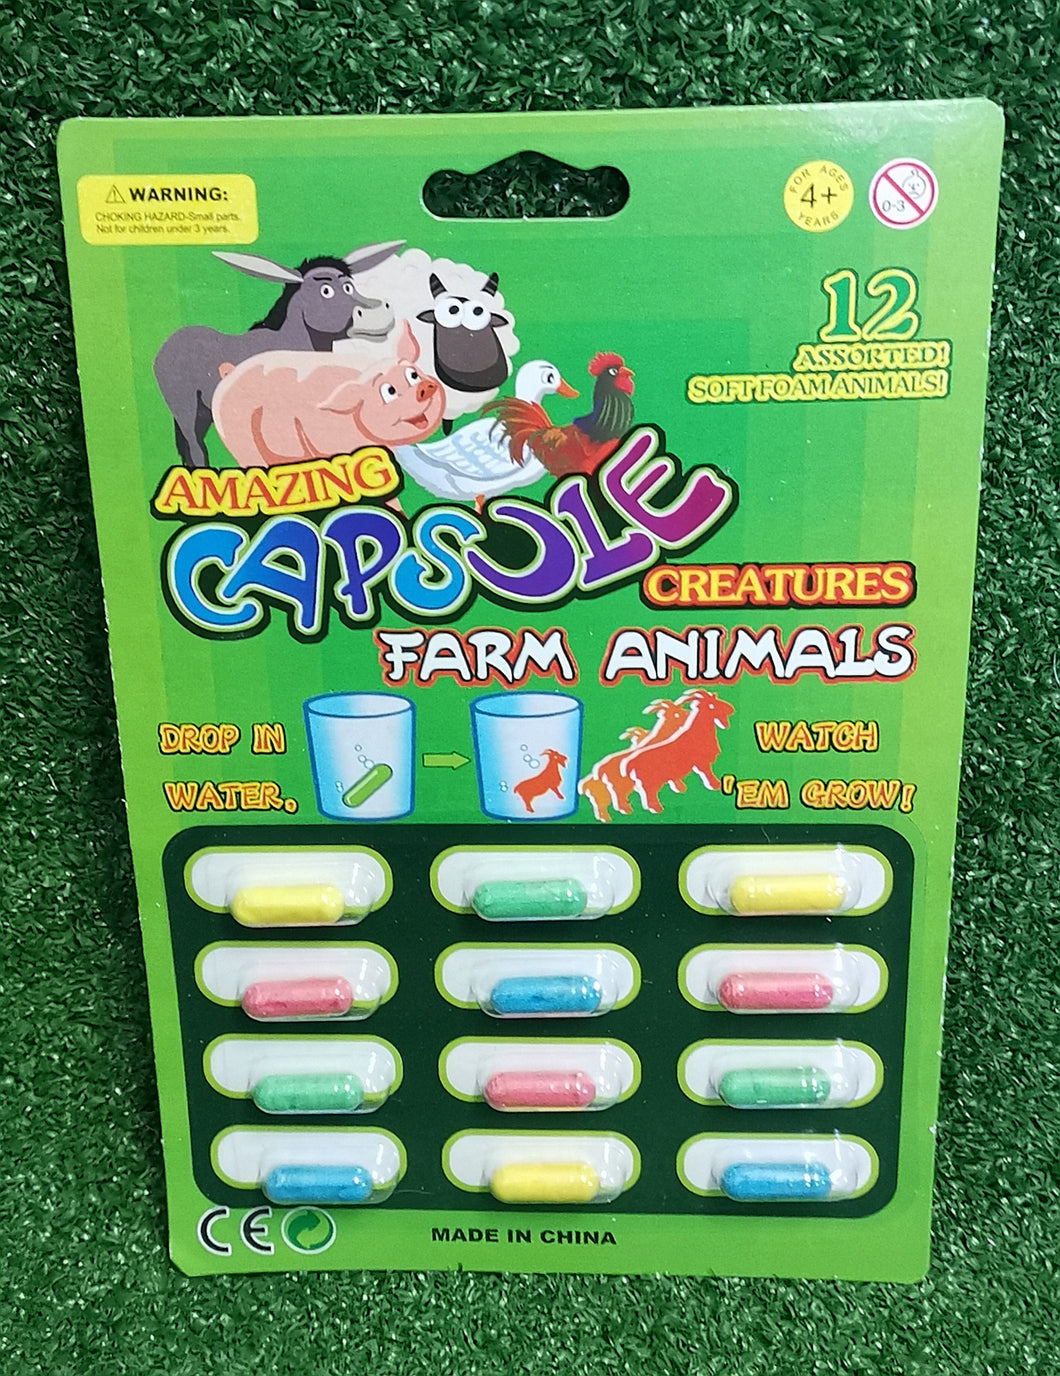 Growing capsule creatures - farm animals